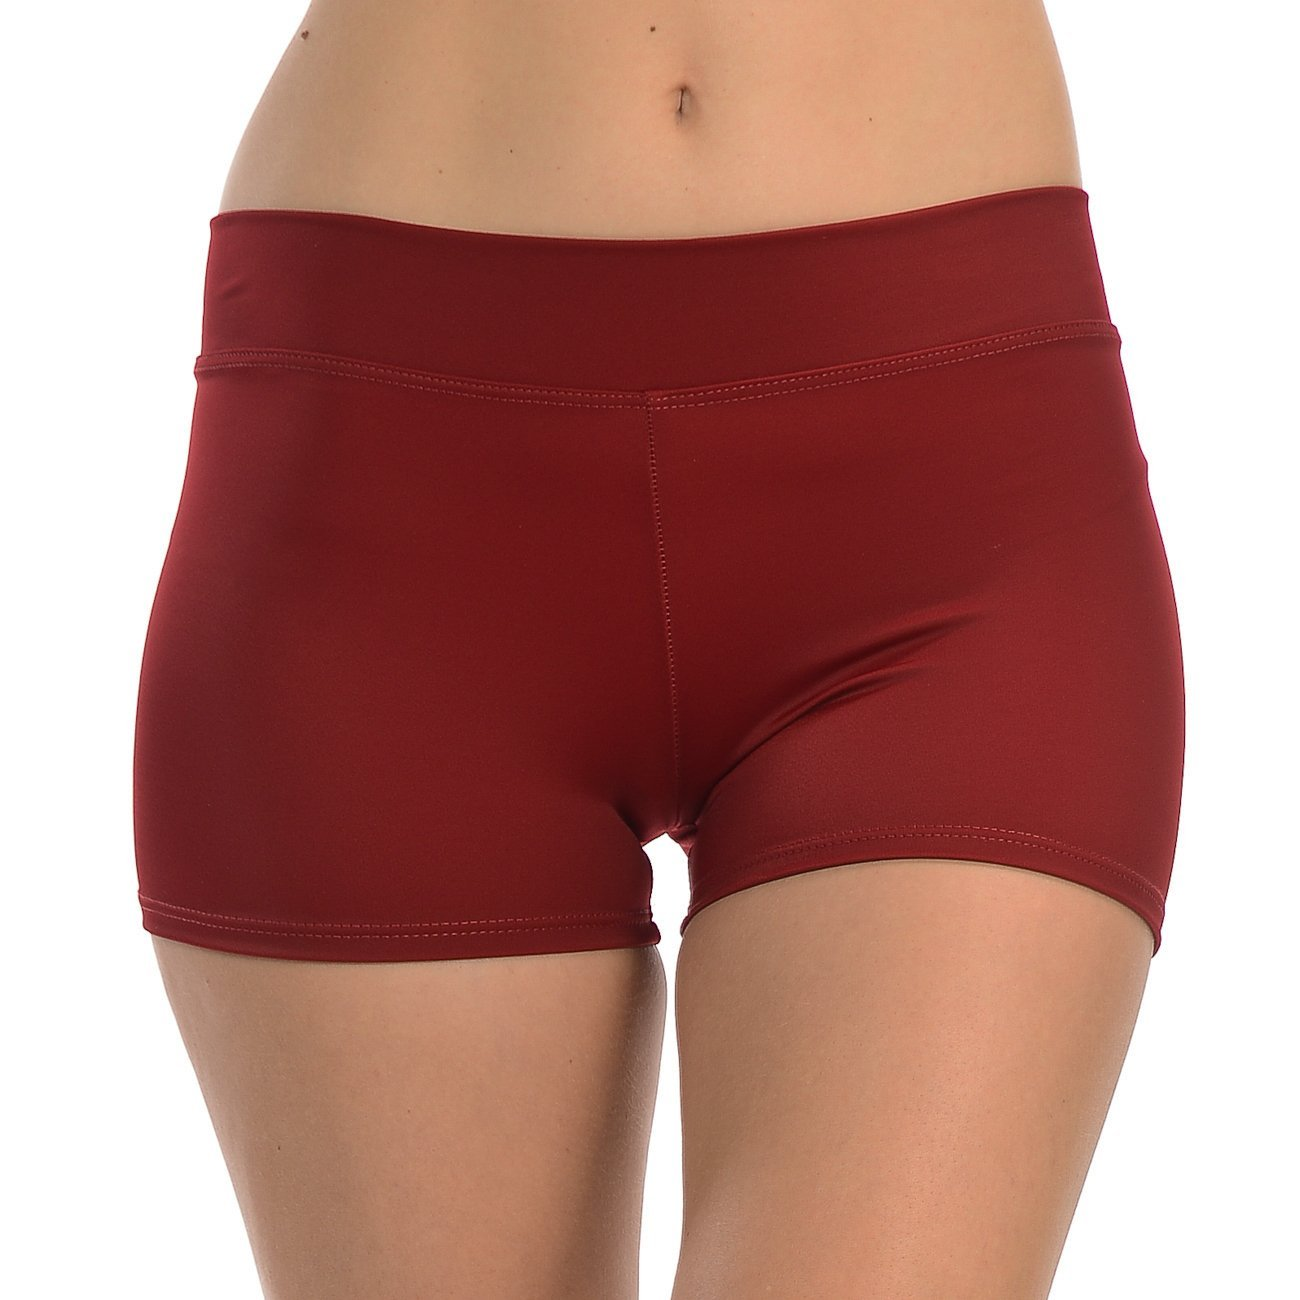 Anza Girls Active Wear Dance Booty Shorts-Maroon,Small(5/6) by Anza Collection